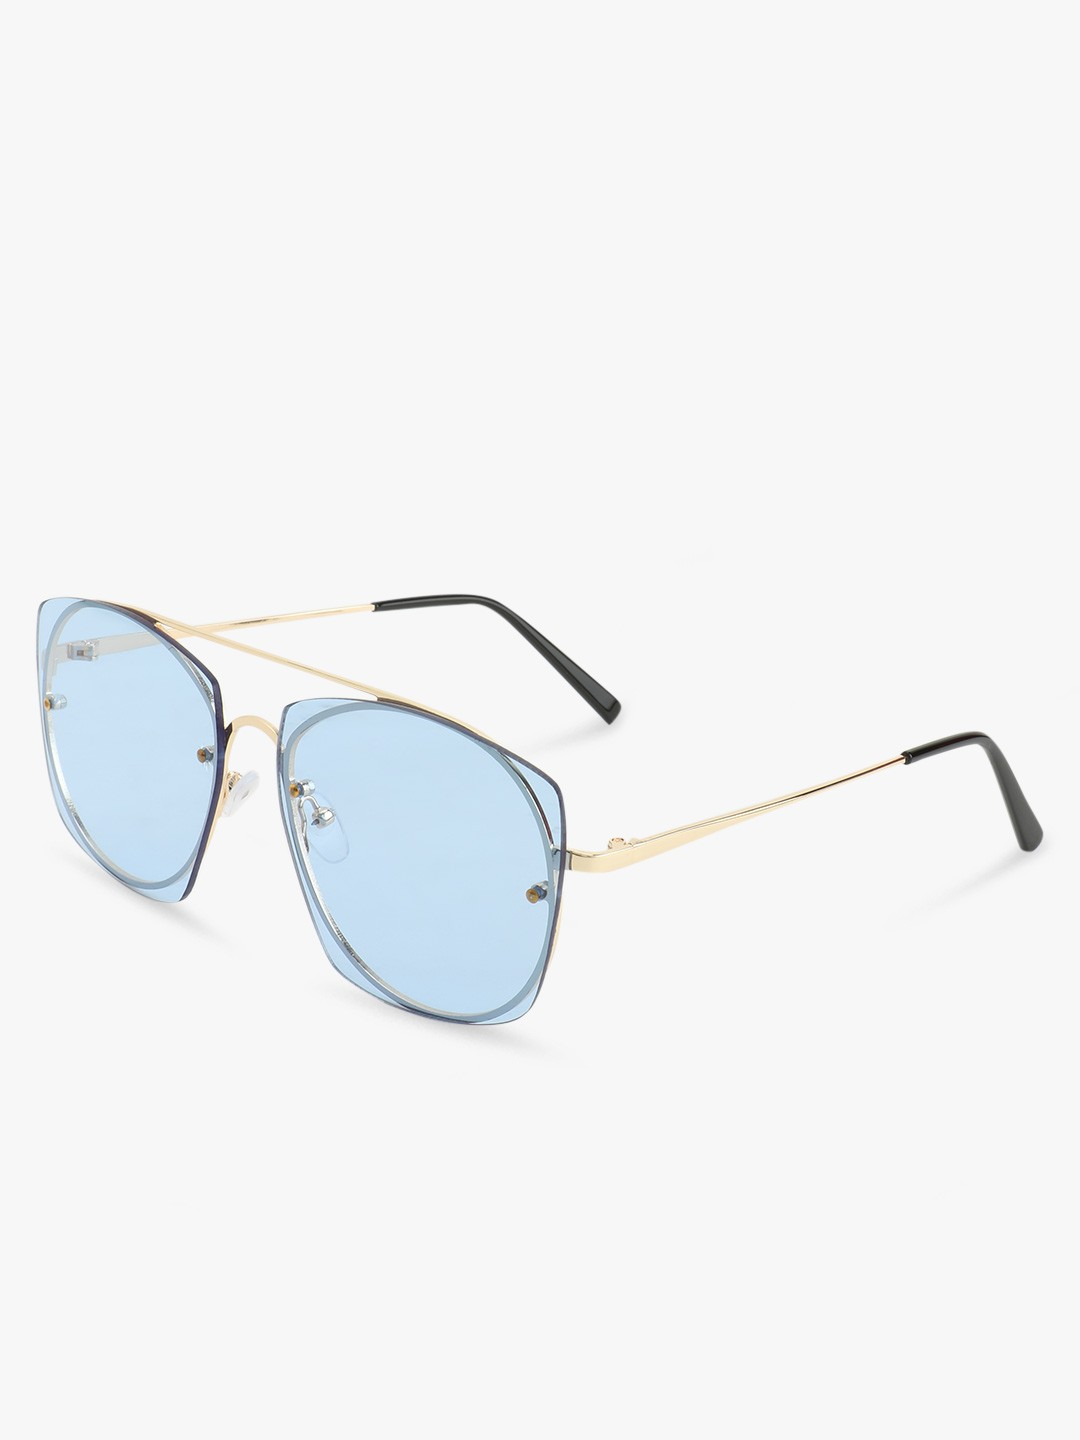 Sneak-a-Peek Blue Tinted Lens Sunglasses 1